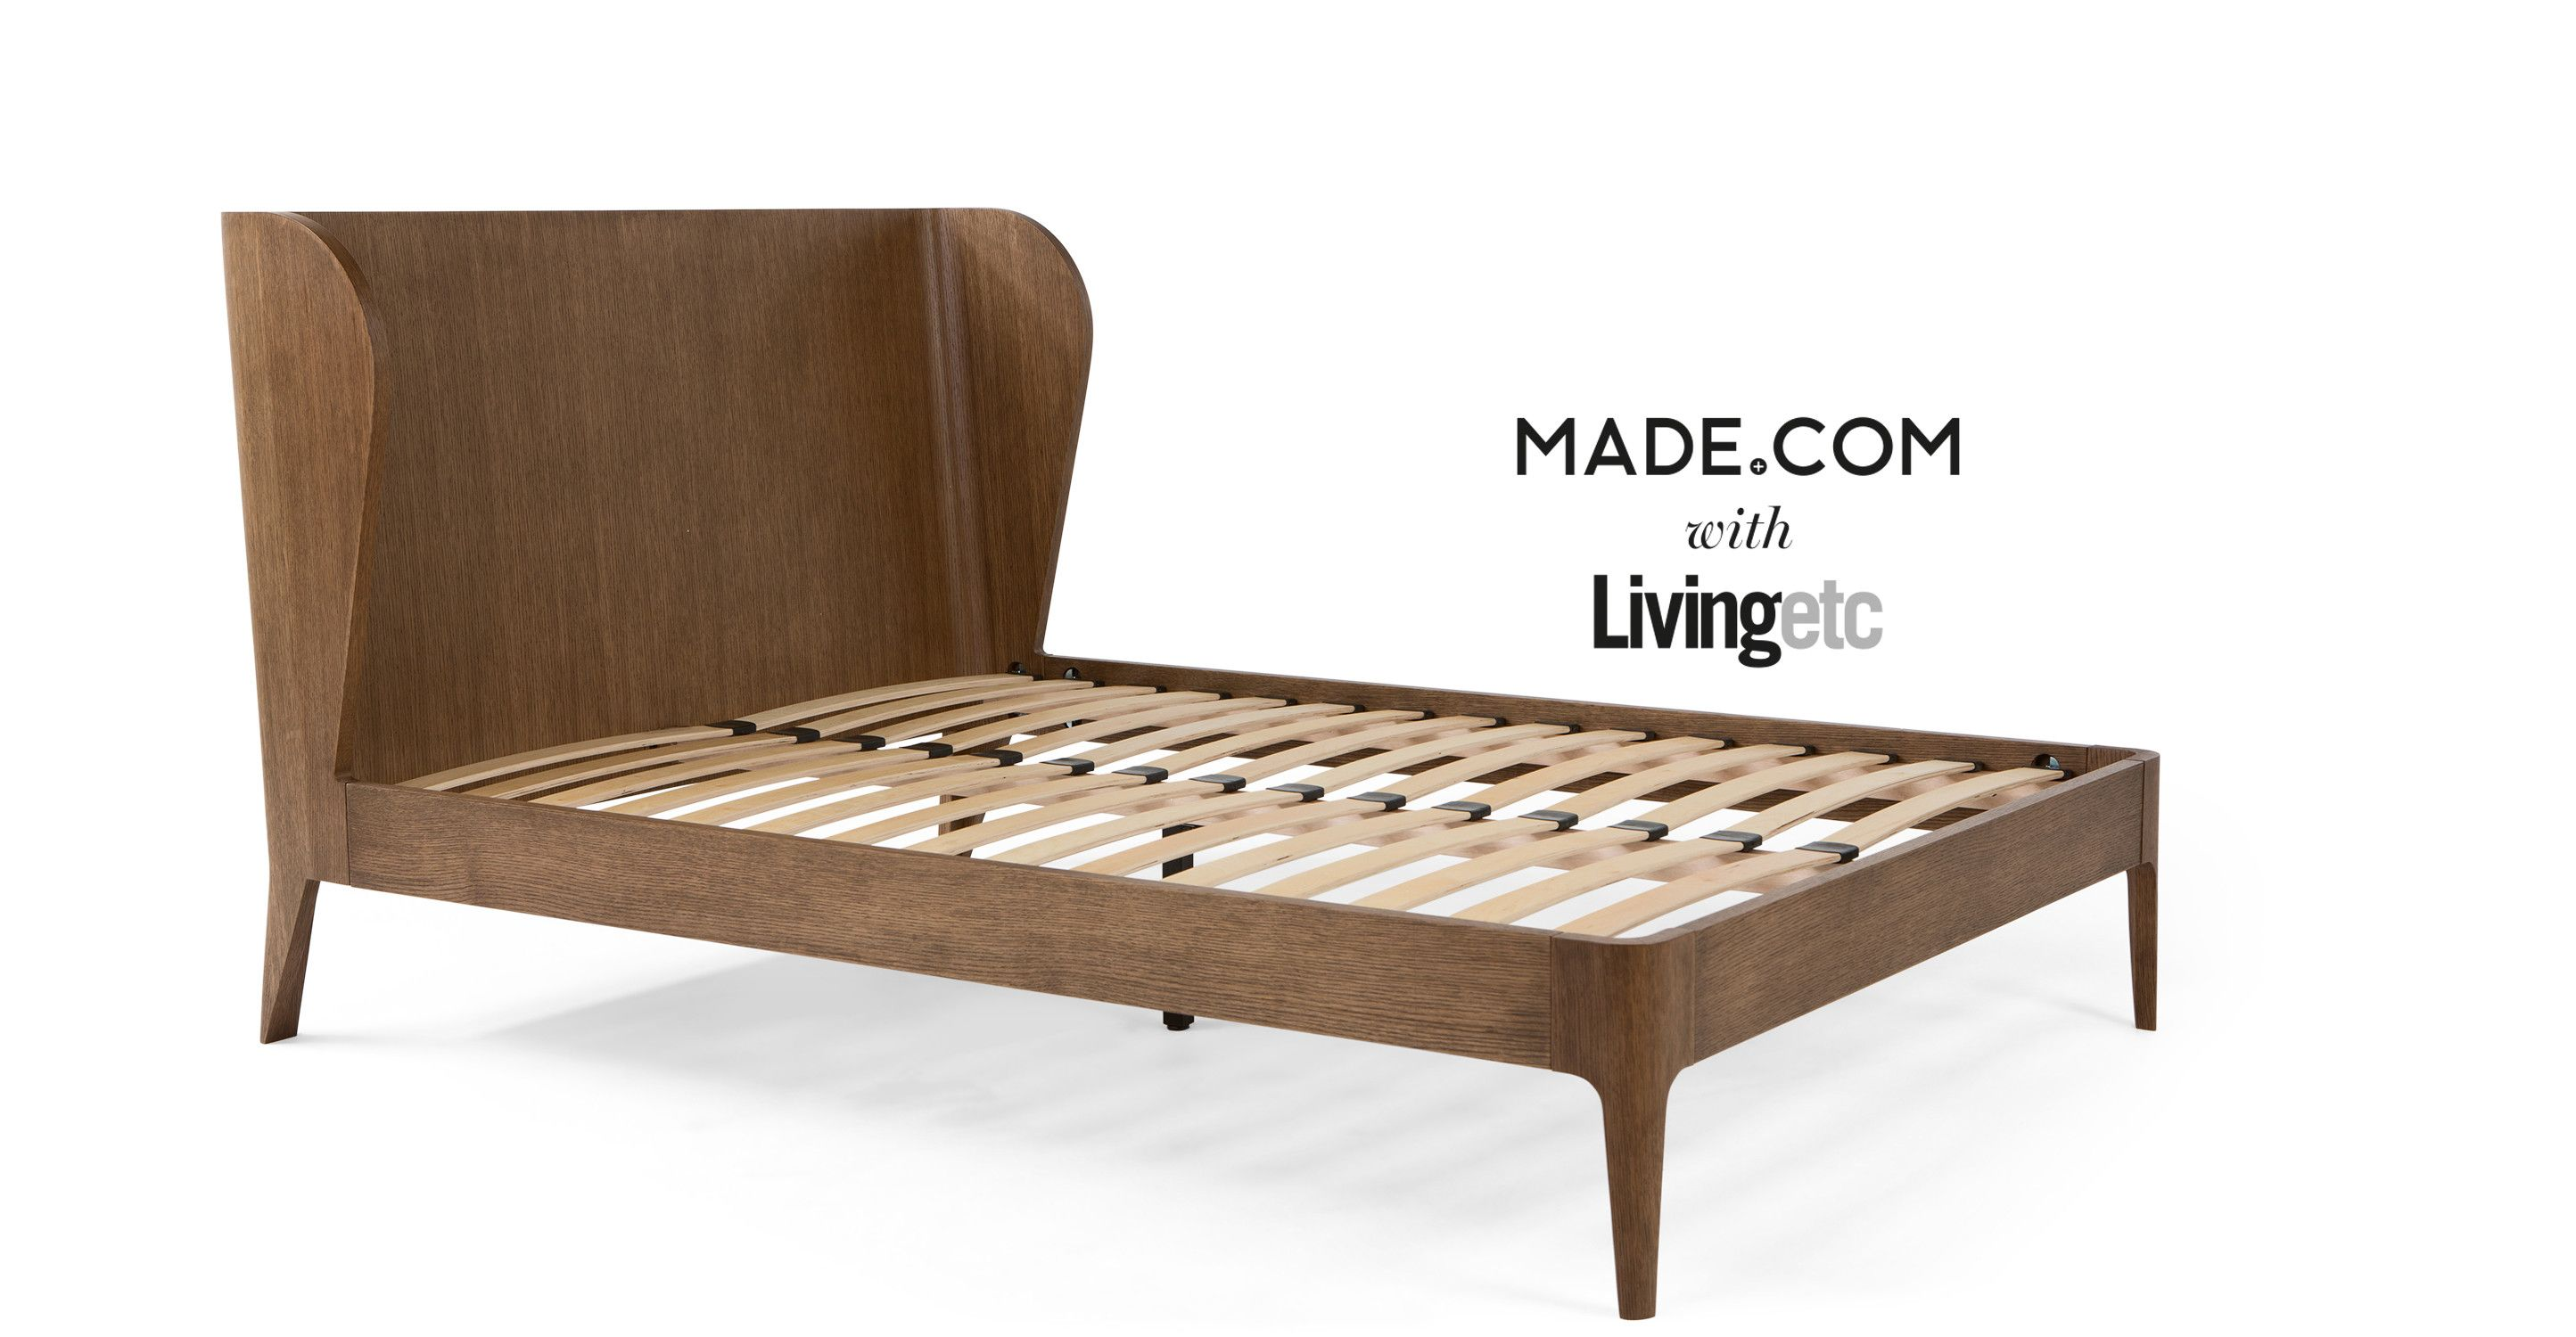 Belgrave King Size Bed, Dark Stained Oak from Made.com. Dark Wood ...